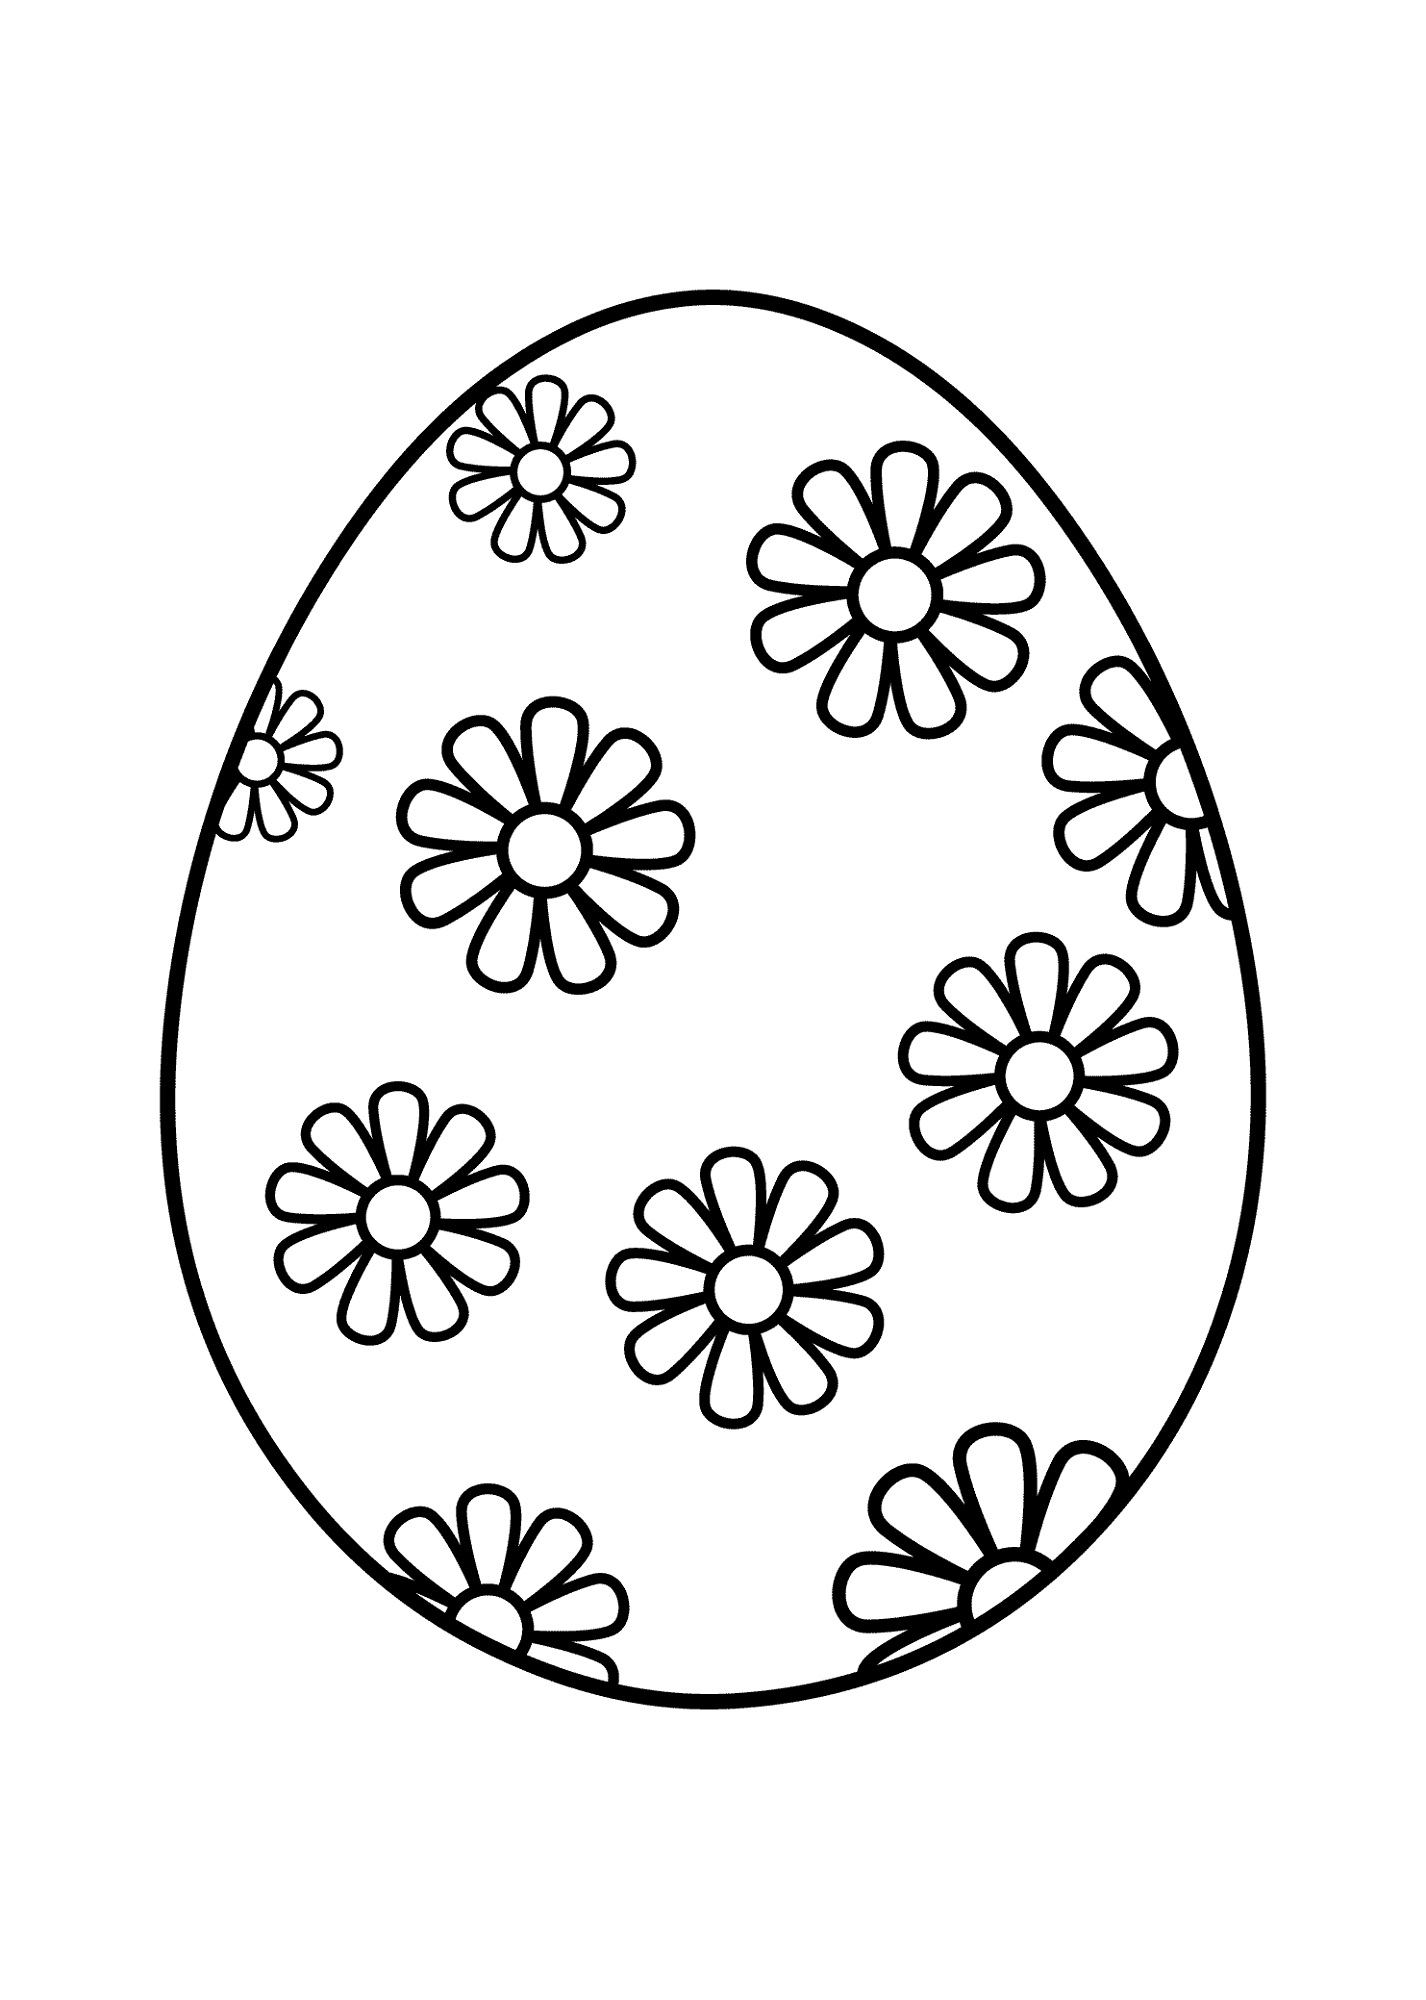 Drawing Blank Easter Egg Template